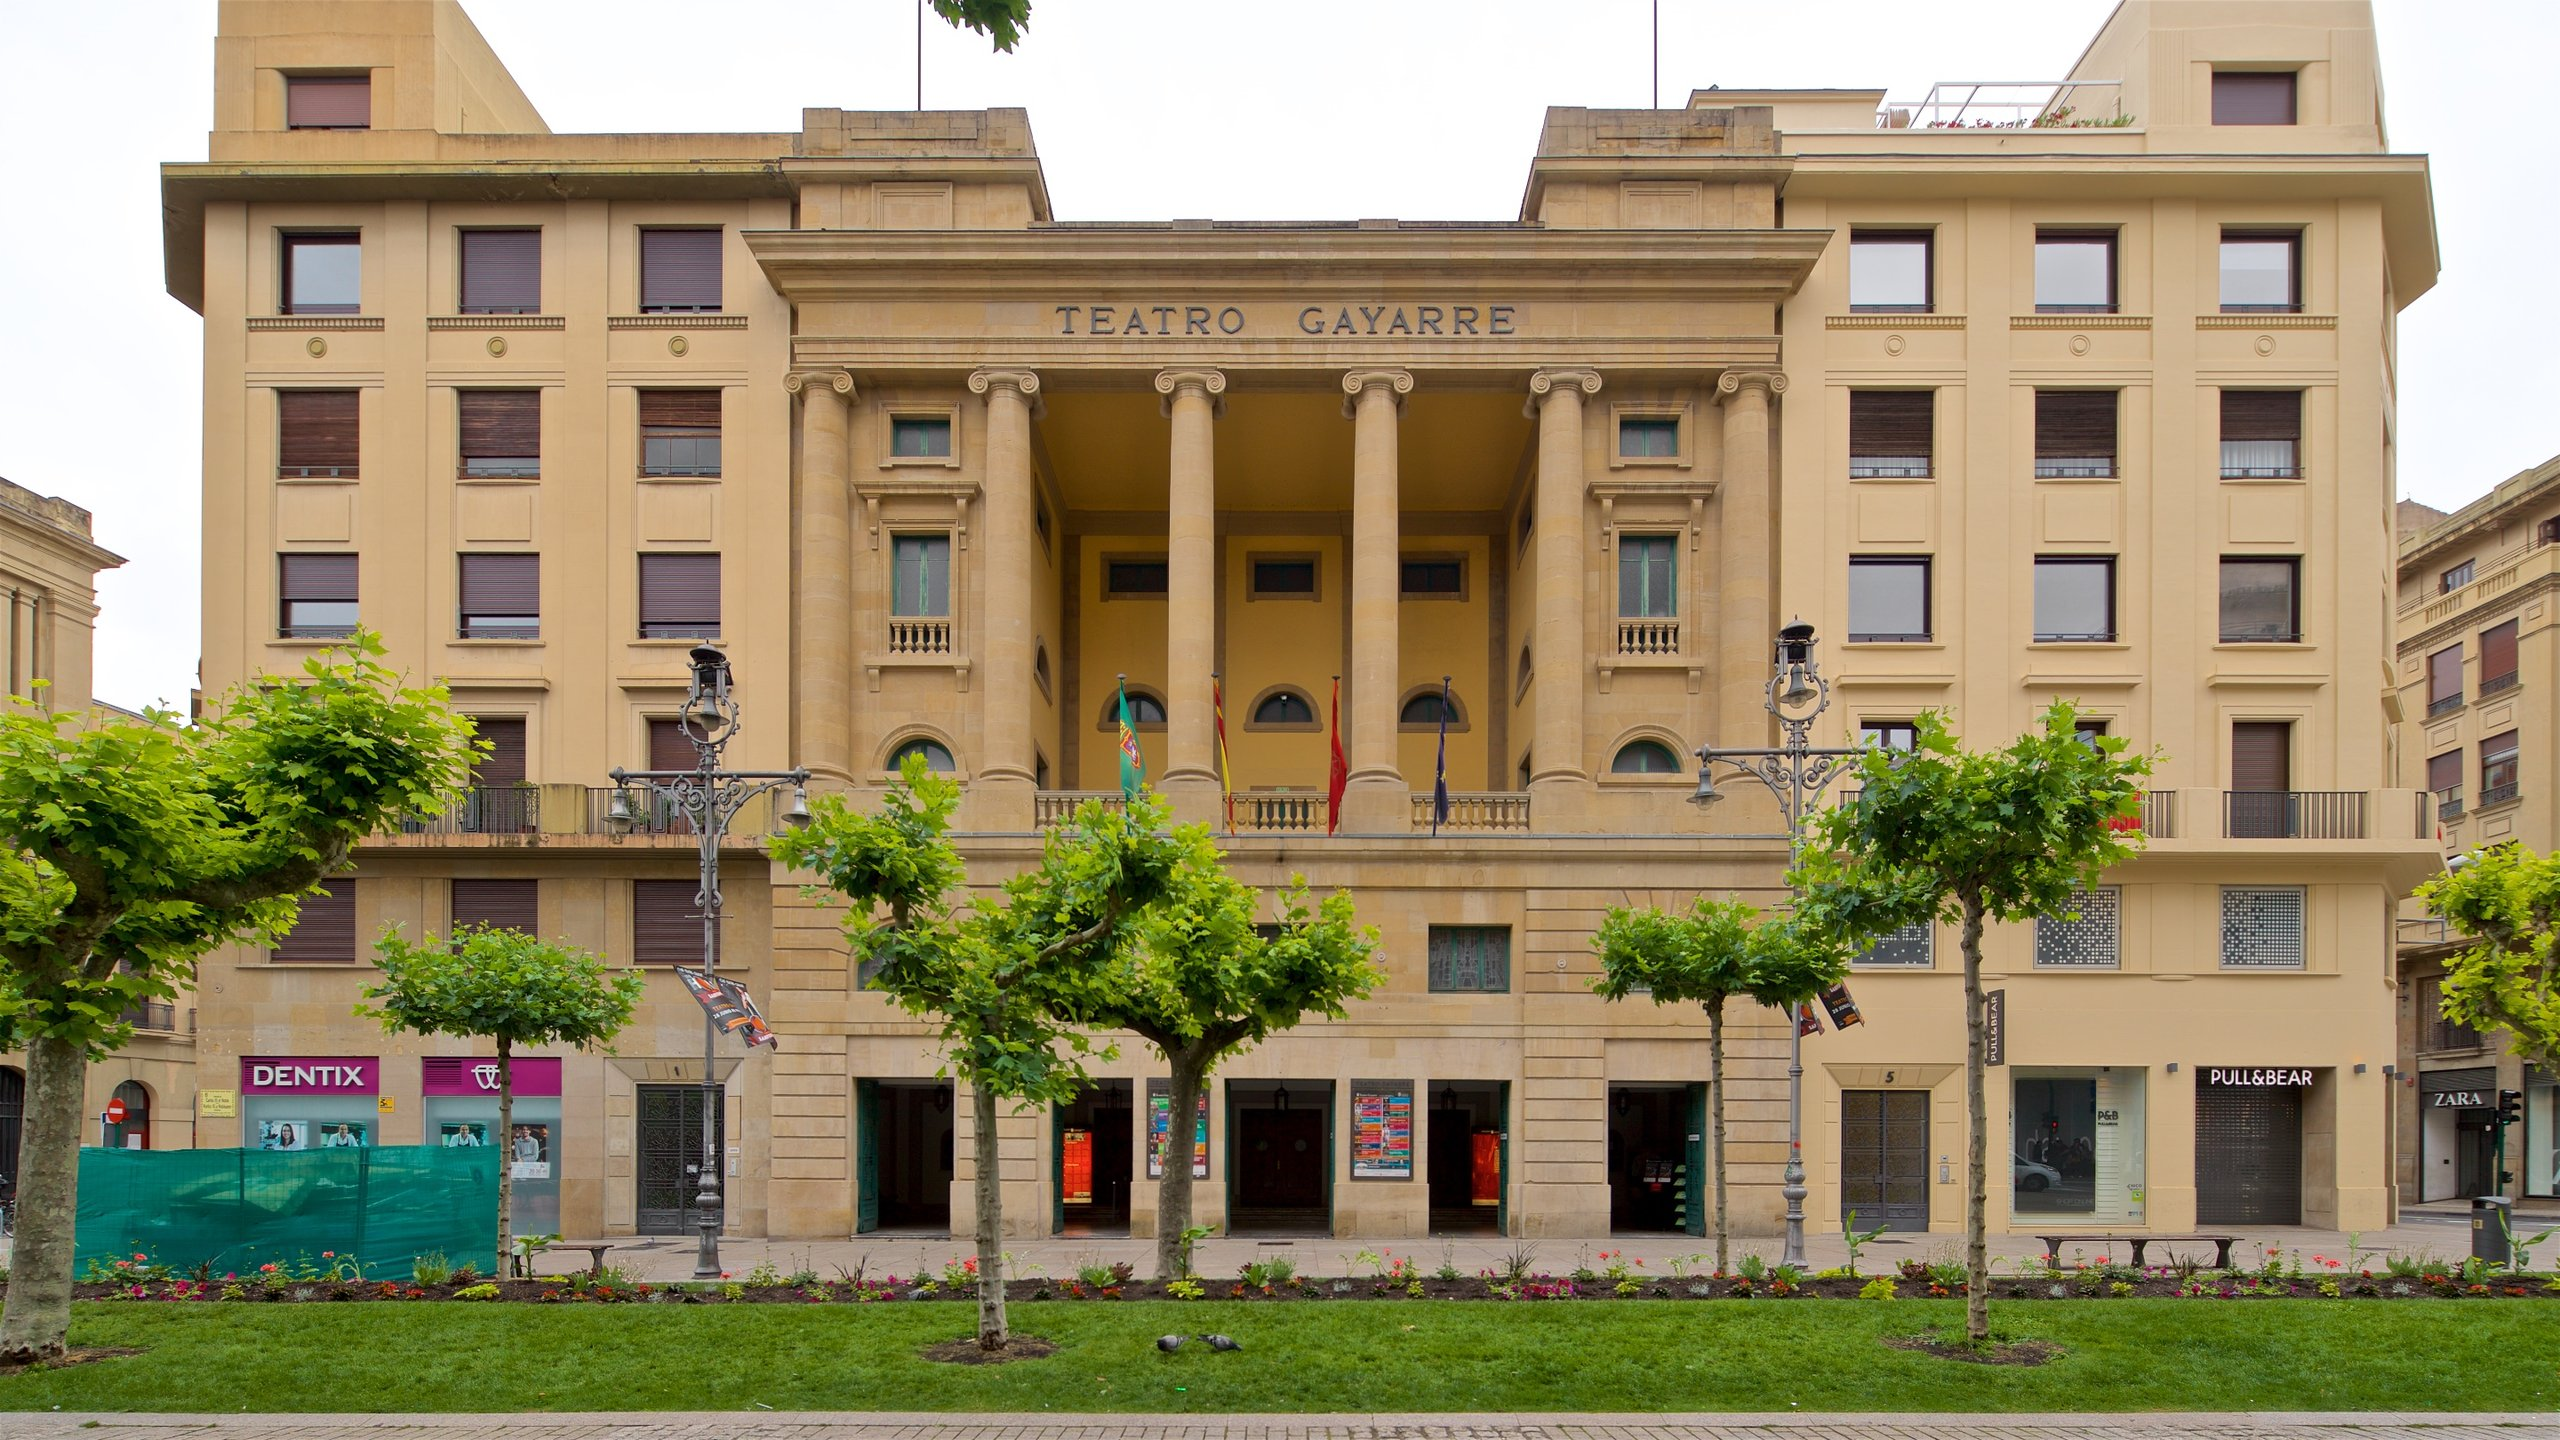 Hotels Closest To Teatro Gayarre In Pamplona Expedia Ie